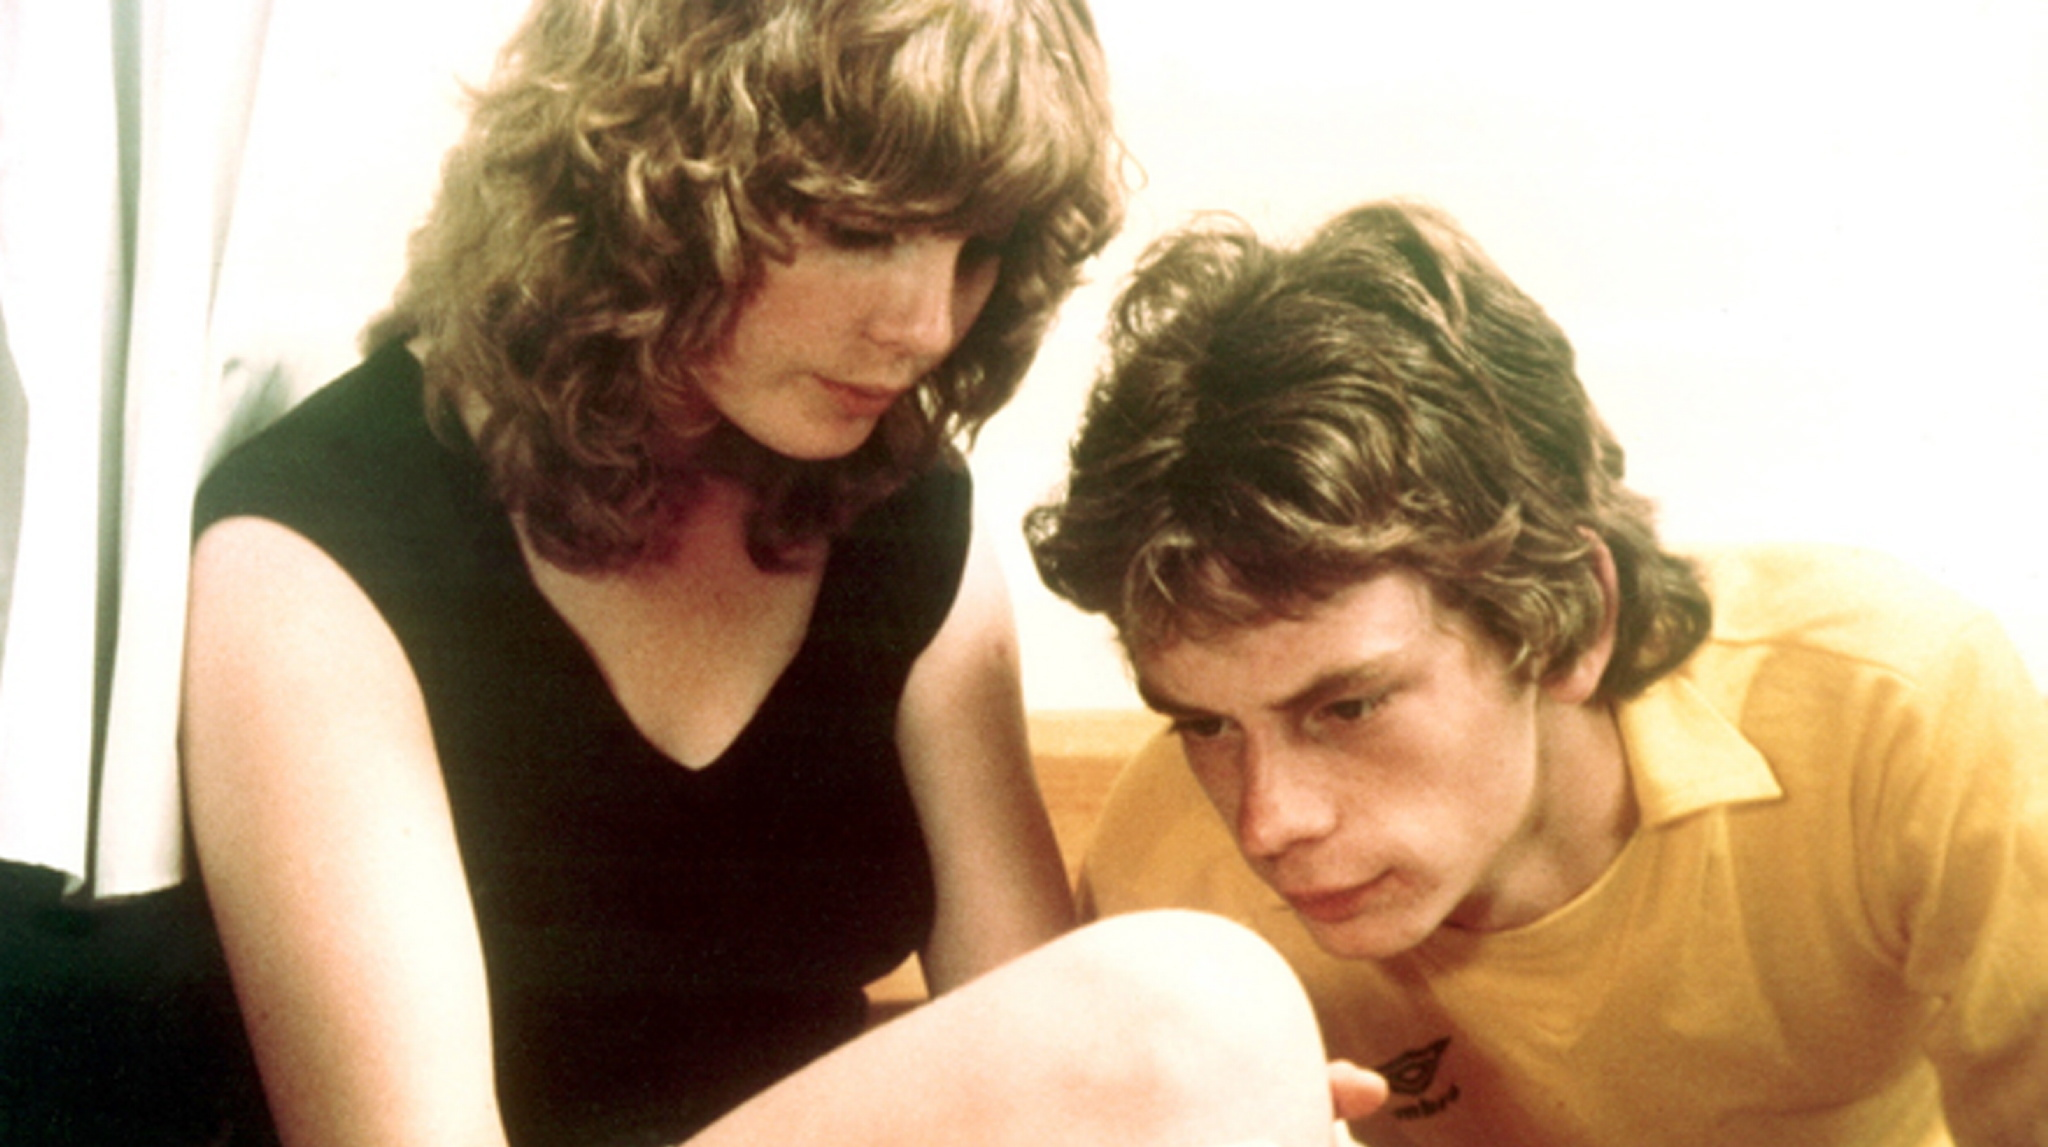 Romantic movie: Gregory's Girl